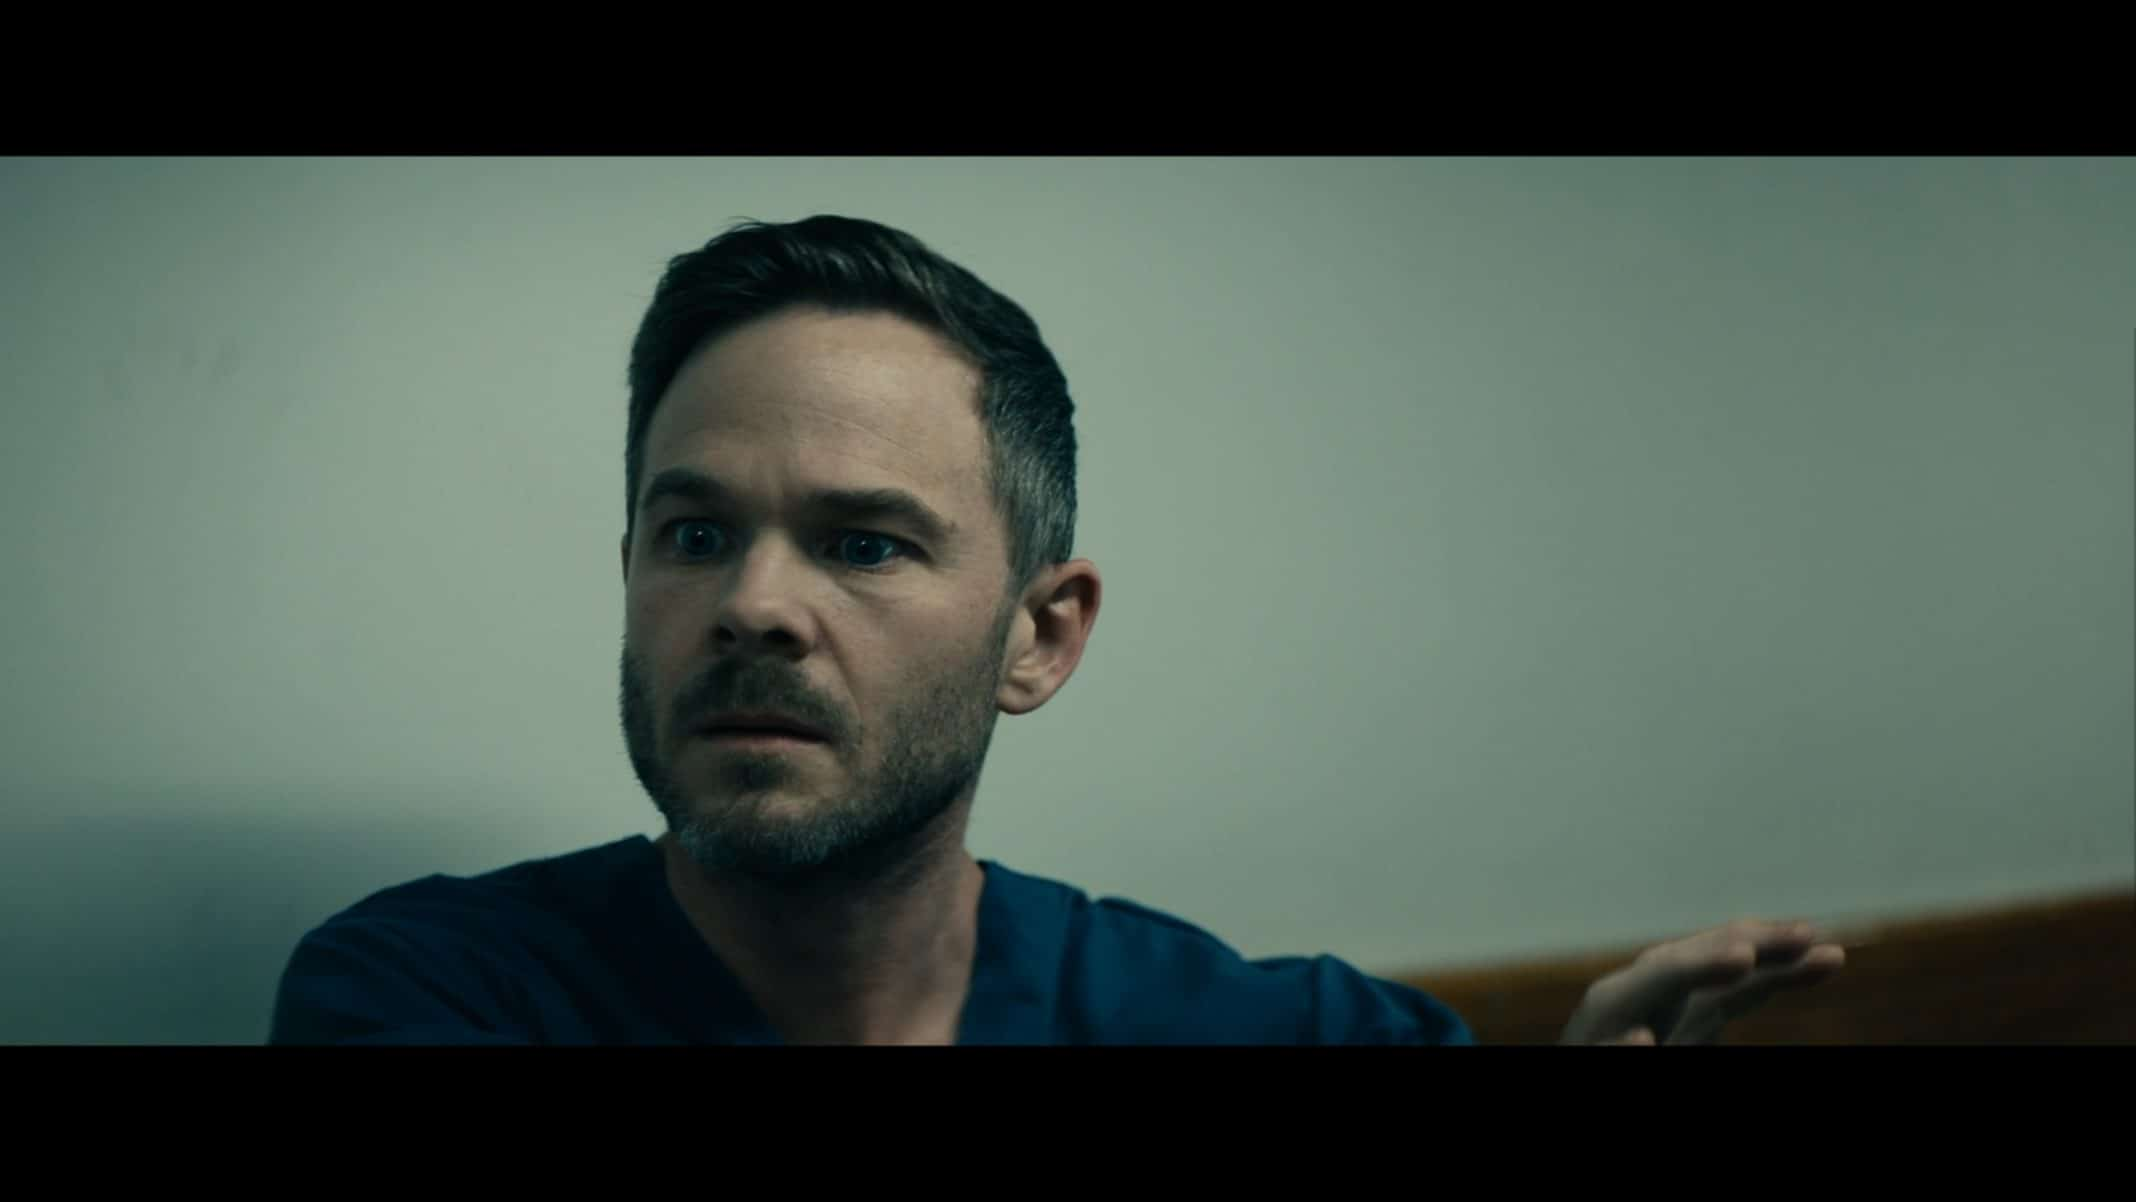 Lamplighter (Shawn Ashmore) out of his costume.